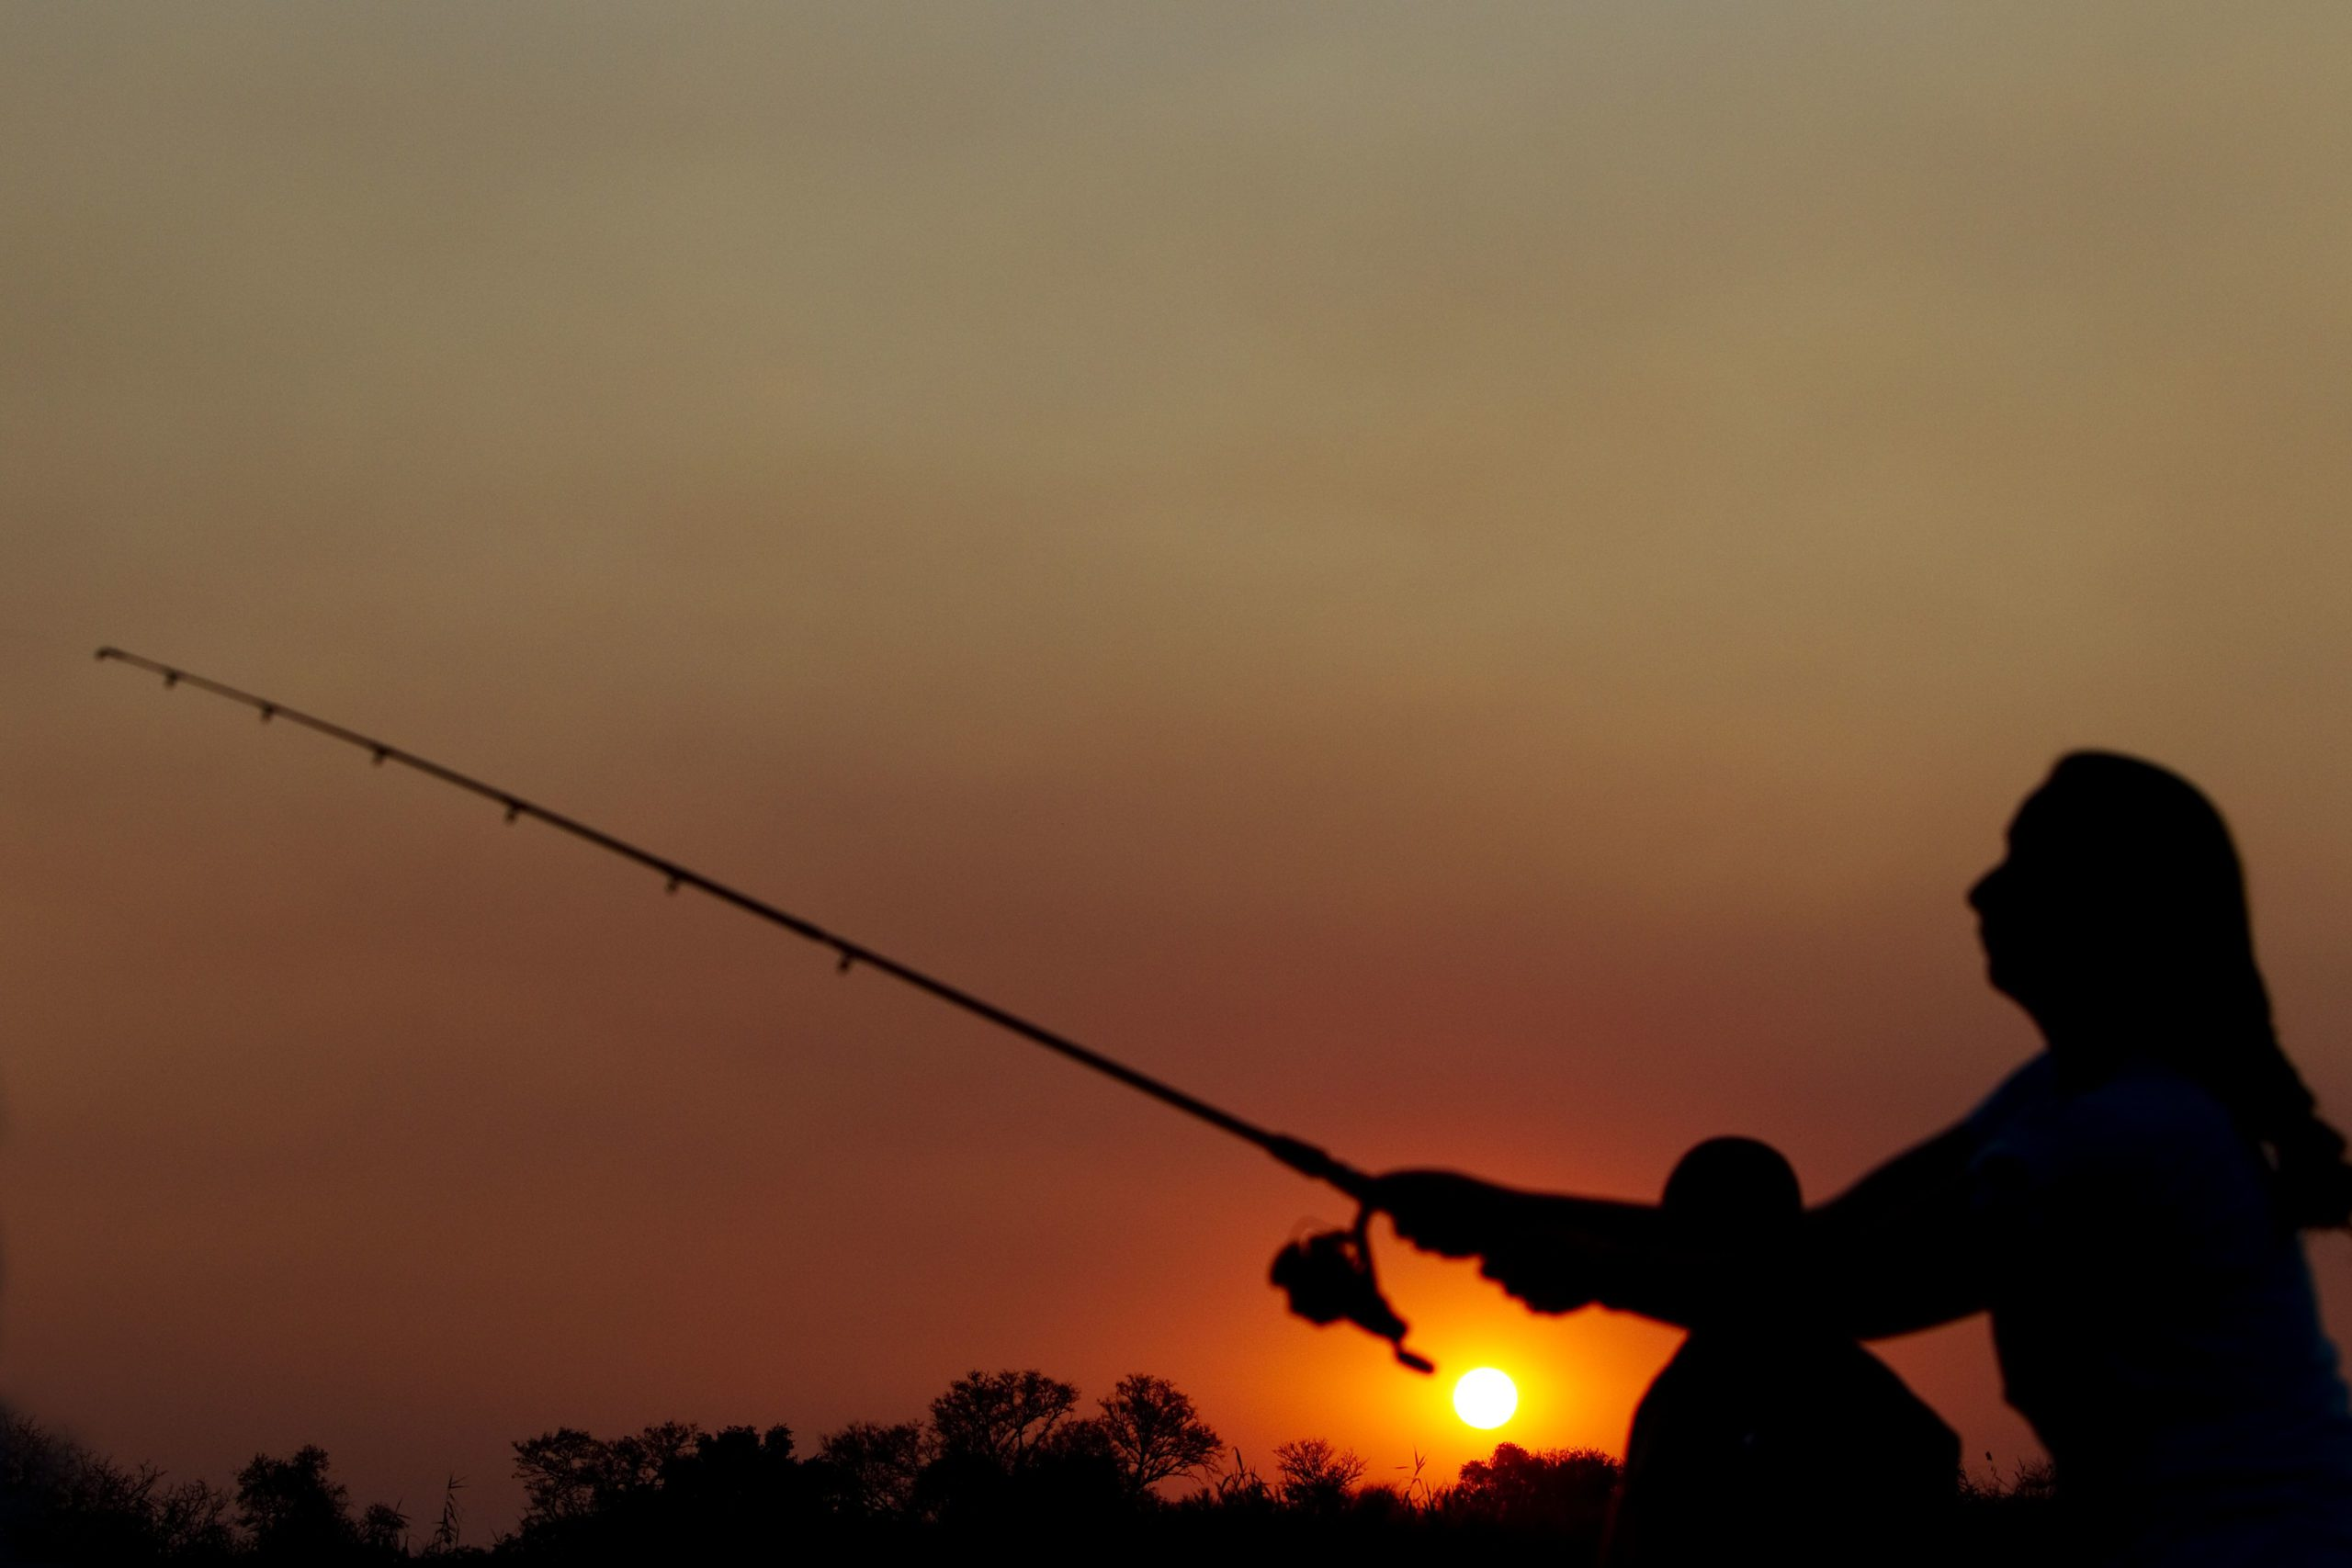 While on our Botswana safari try your hand at Okavango Delta fishing at sunrise